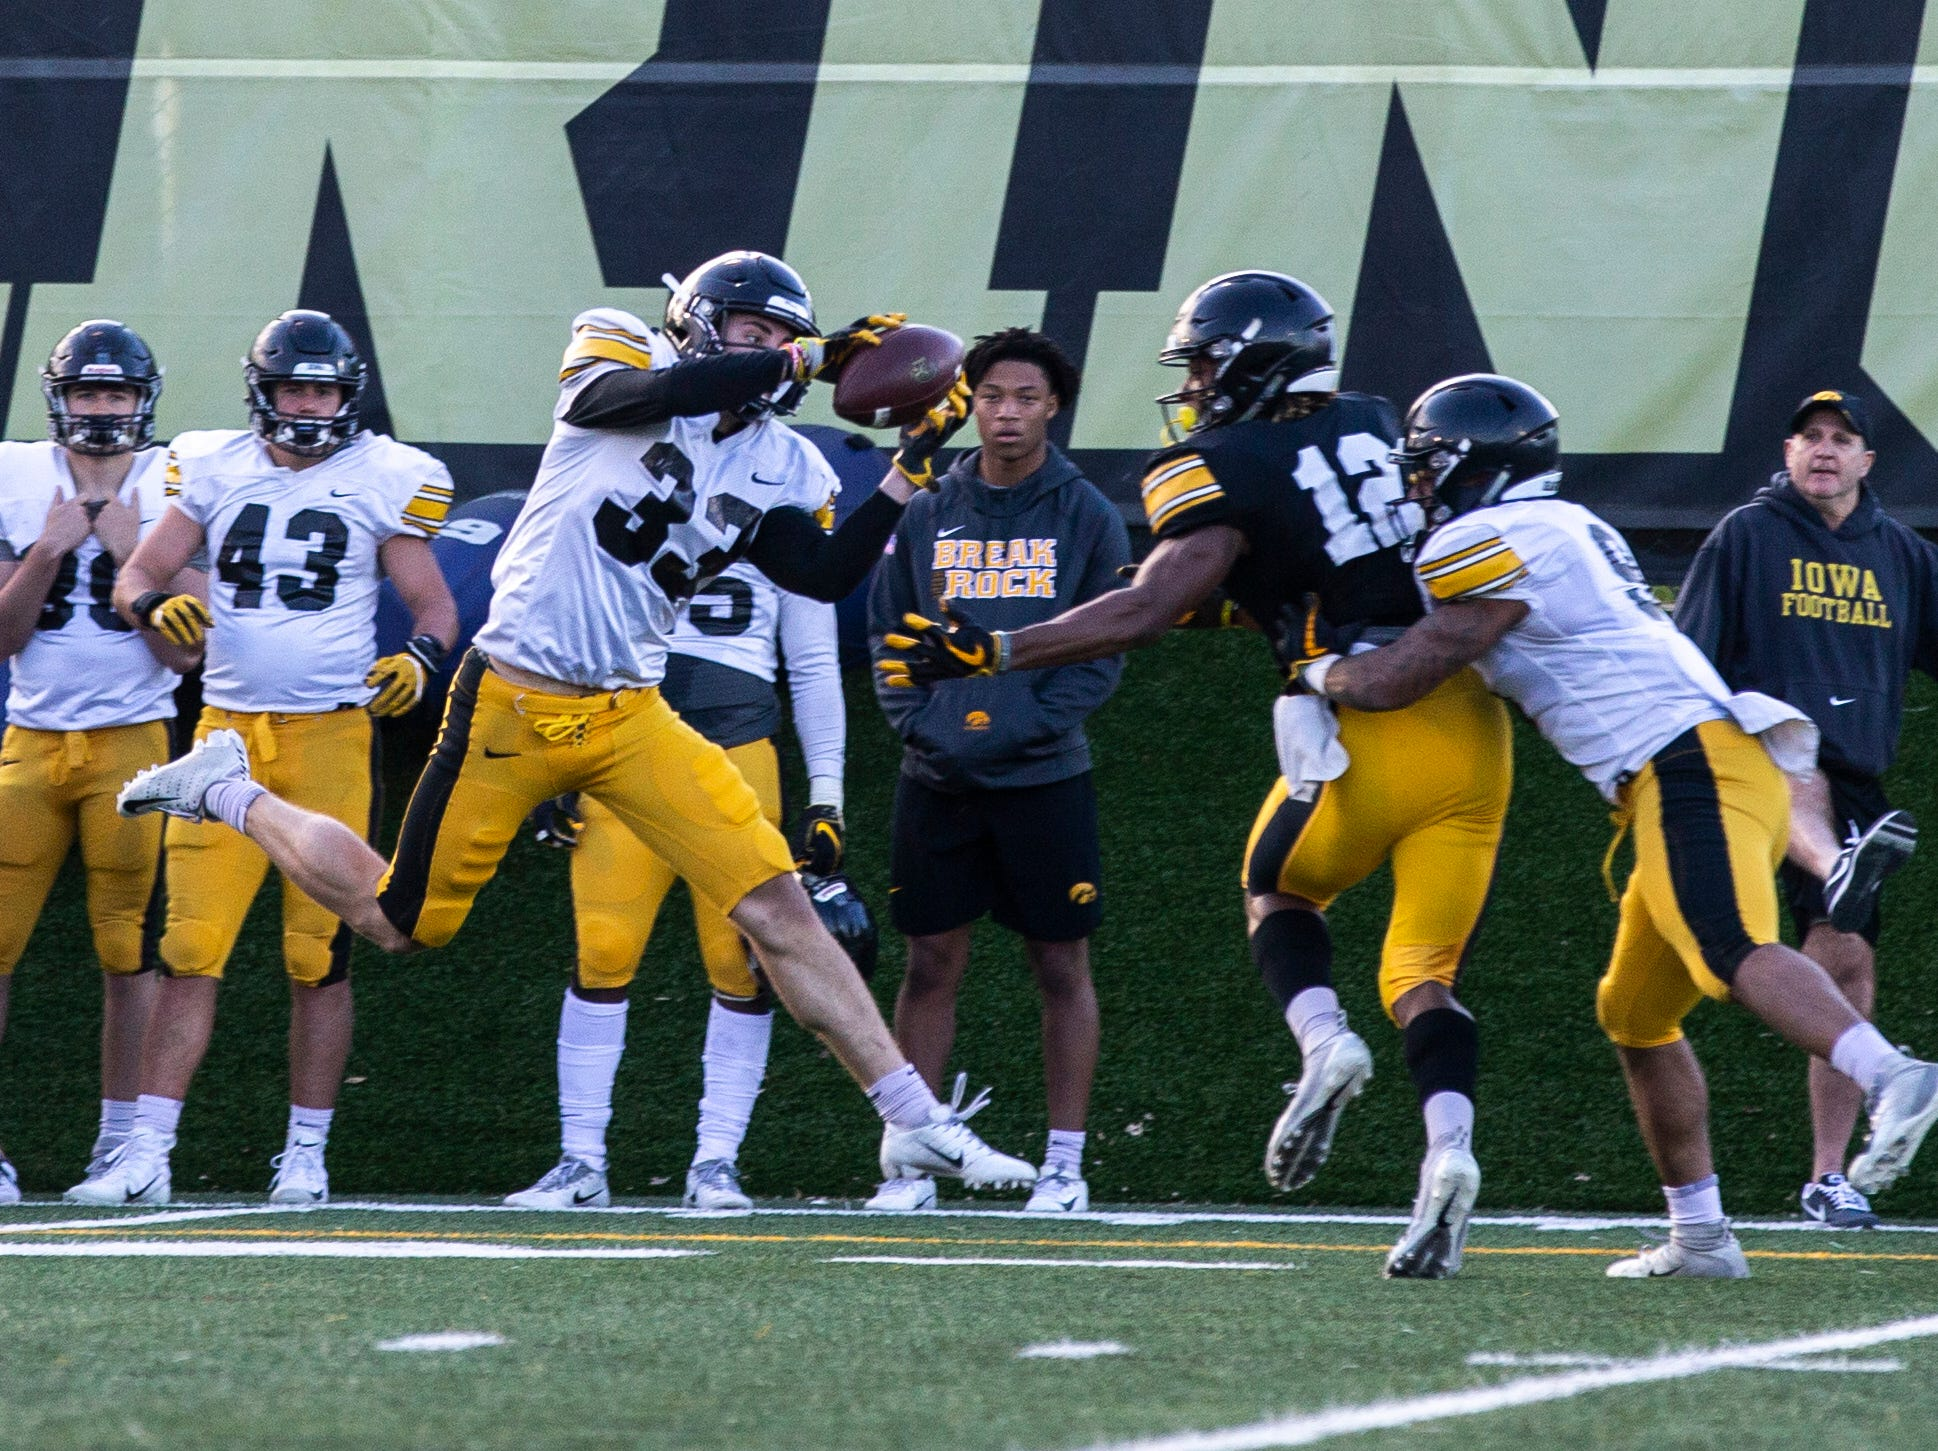 Iowa defensive back Riley Moss (33) catches an interception during the final spring football practice, Friday, April 26, 2019, at the University of Iowa outdoor practice facility in Iowa City, Iowa.